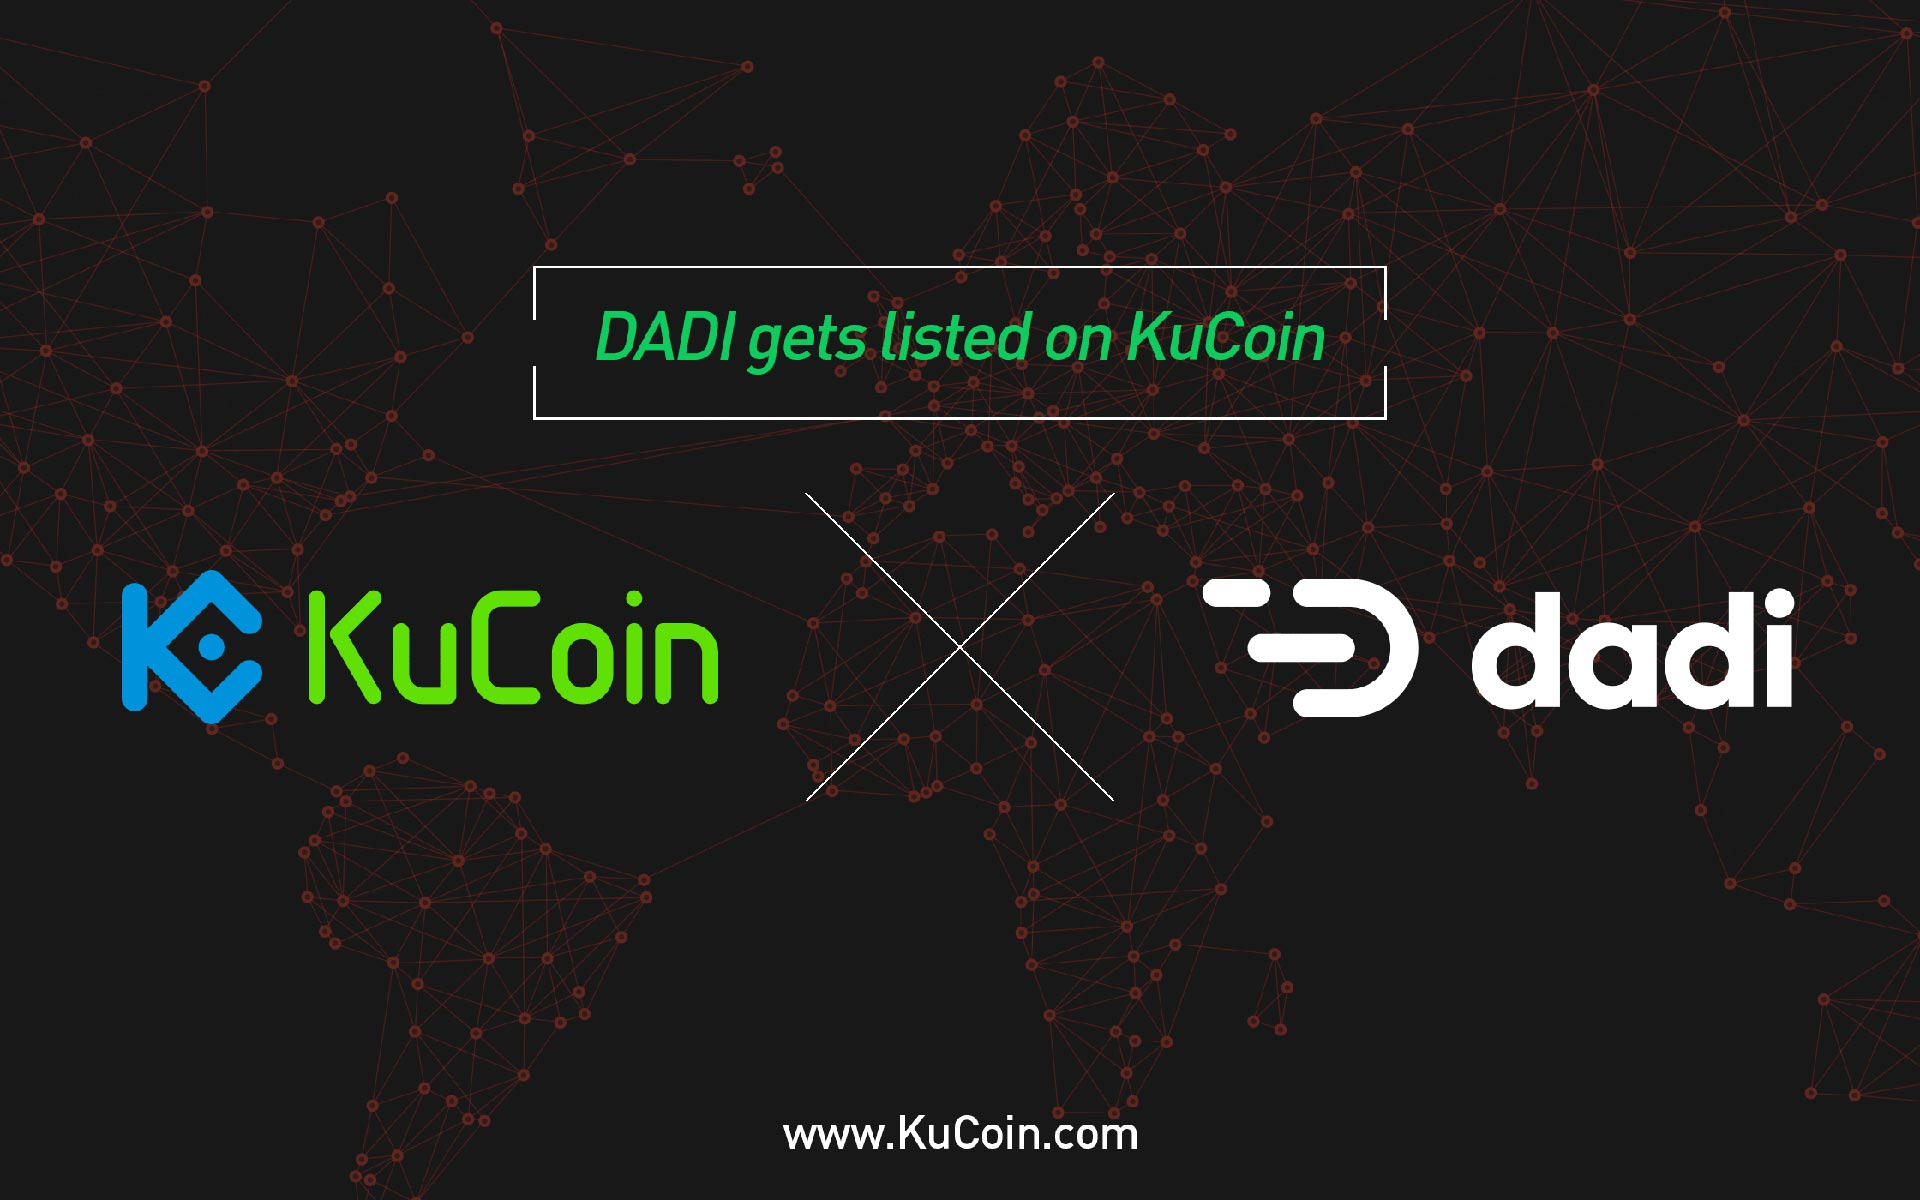 DADI Gets Listed on KuCoin